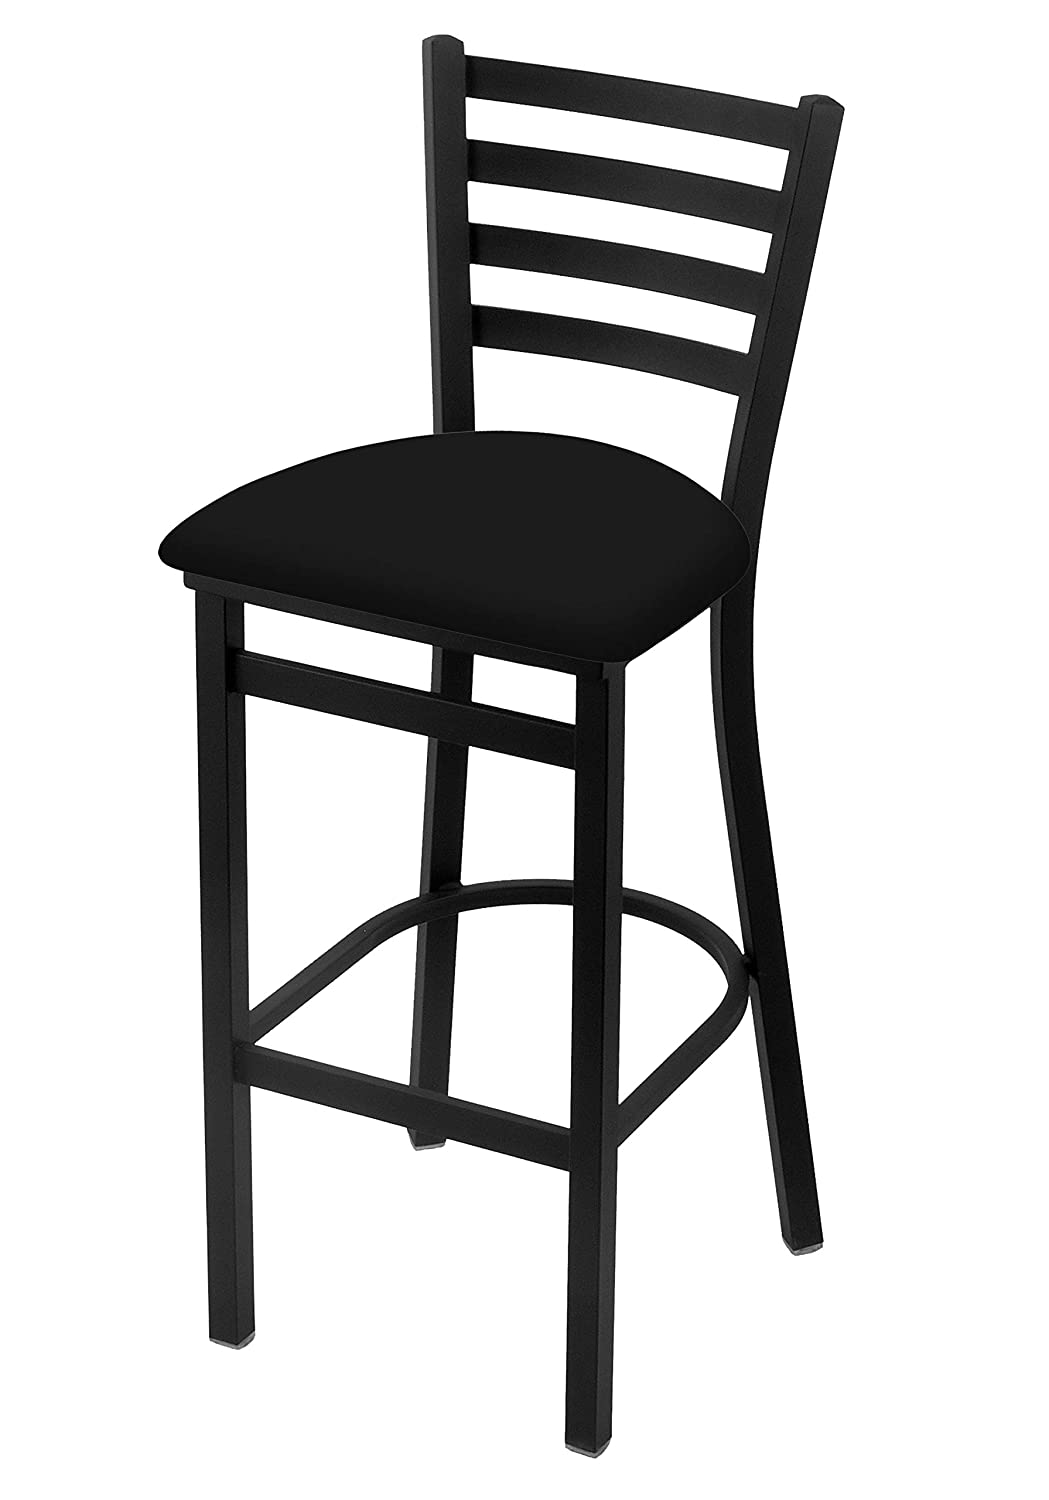 400 25 Stationary Counter Stool with Black Wrinkle Finish and Black Vinyl Seat